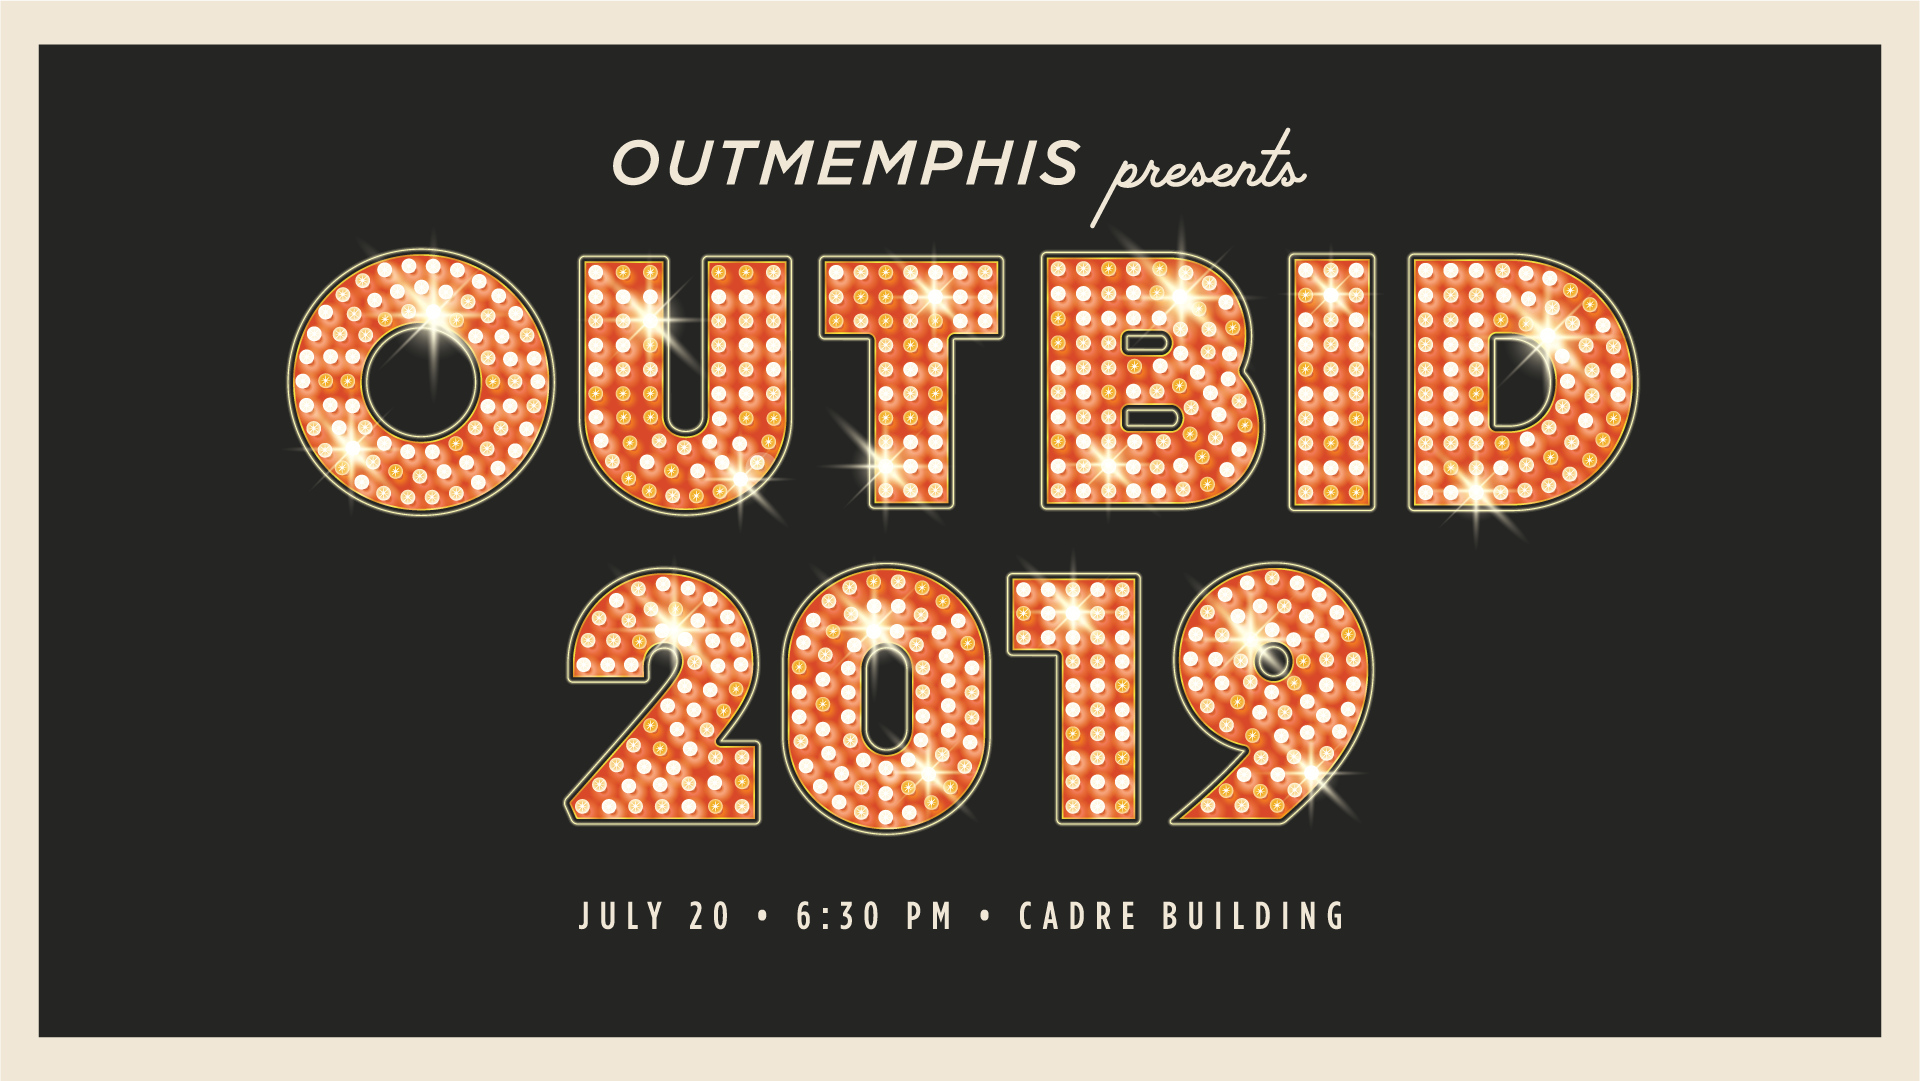 e410e59c3 Get ready, because OUTBid 2019 is almost here! Join us for a fun night of  cocktails, food, games, music, and most importantly a chance to bid on some  ...